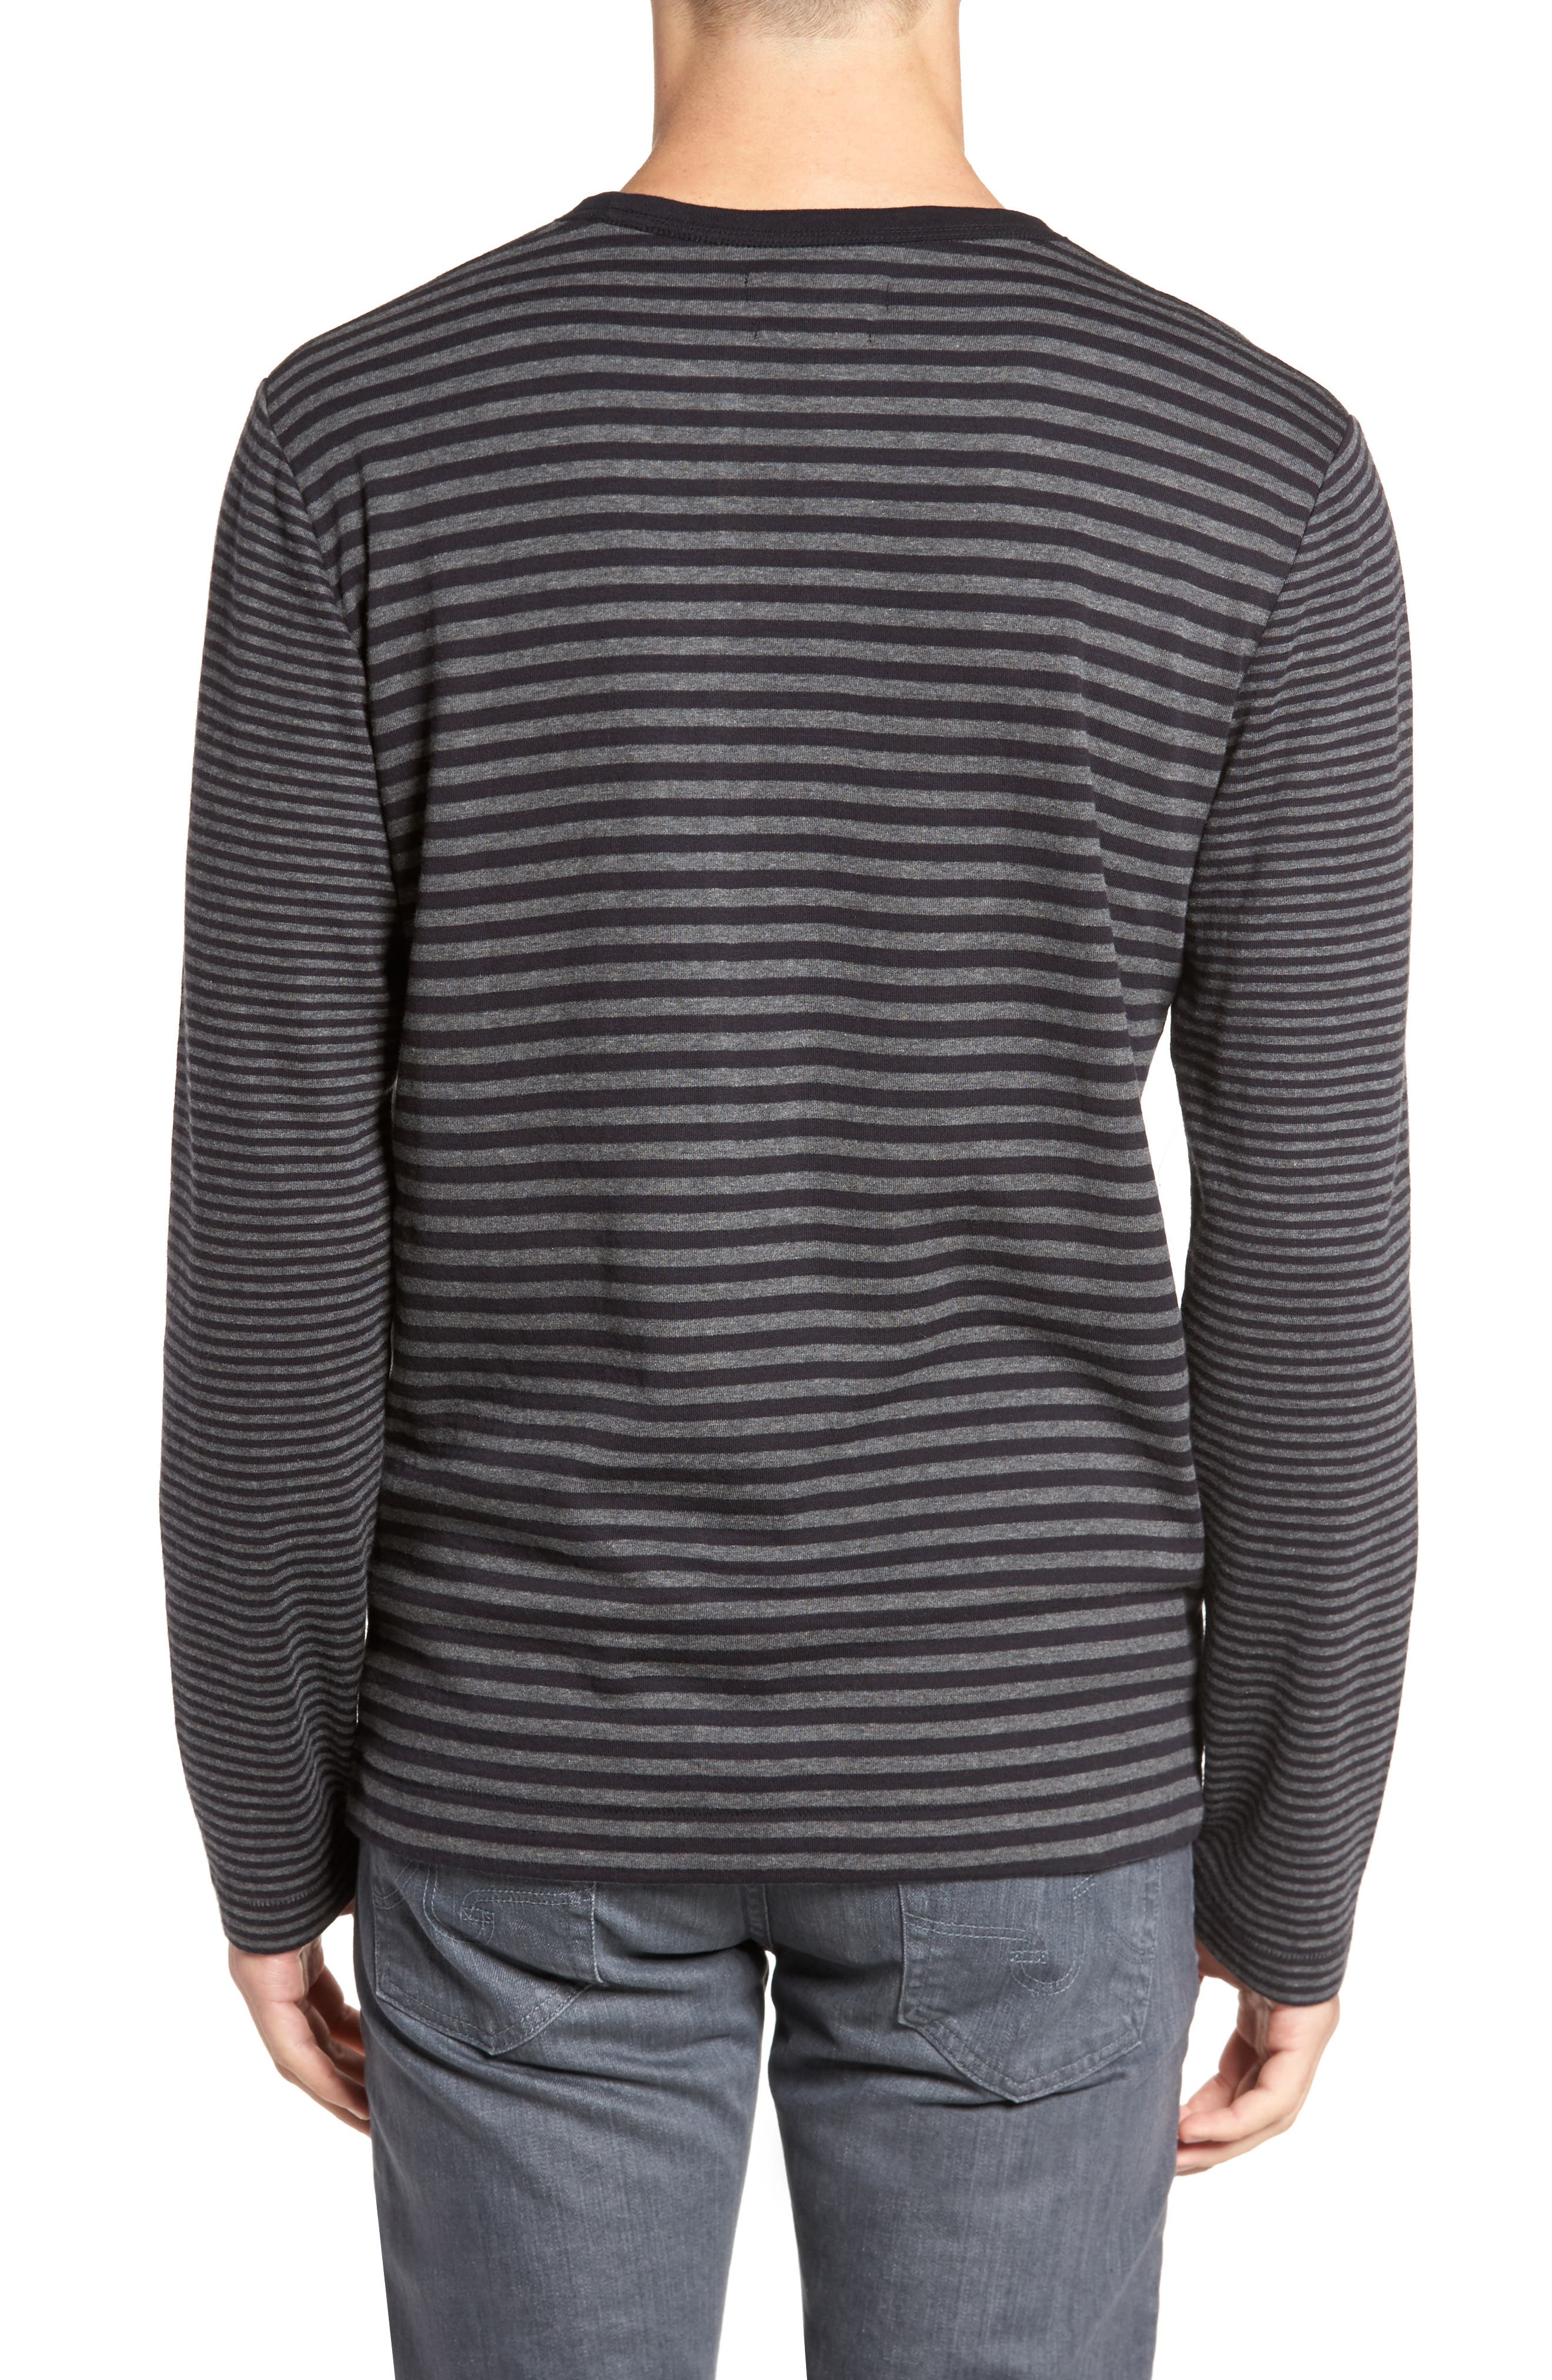 Alternative Stripe Long Sleeve T-Shirt,                             Alternate thumbnail 2, color,                             Charcoal Melange/ Black